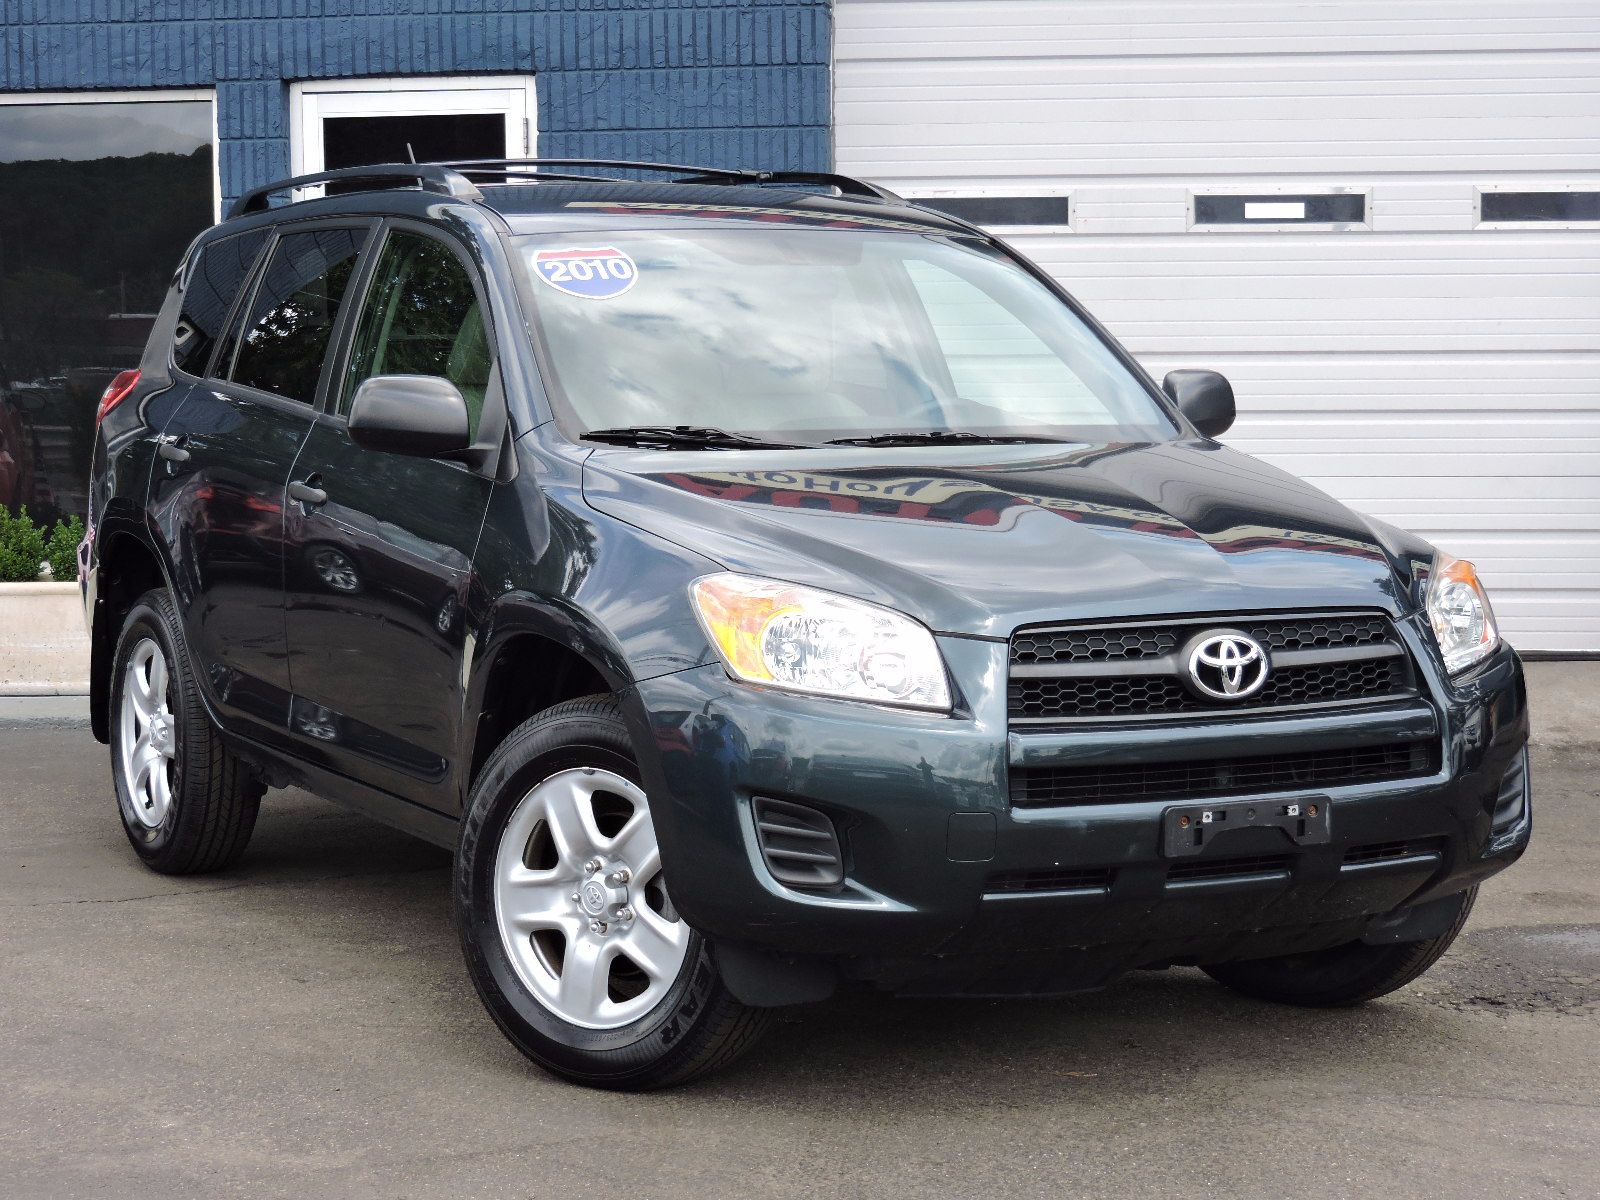 used 2010 toyota rav4 techentertainment pkg at auto house usa saugus. Black Bedroom Furniture Sets. Home Design Ideas